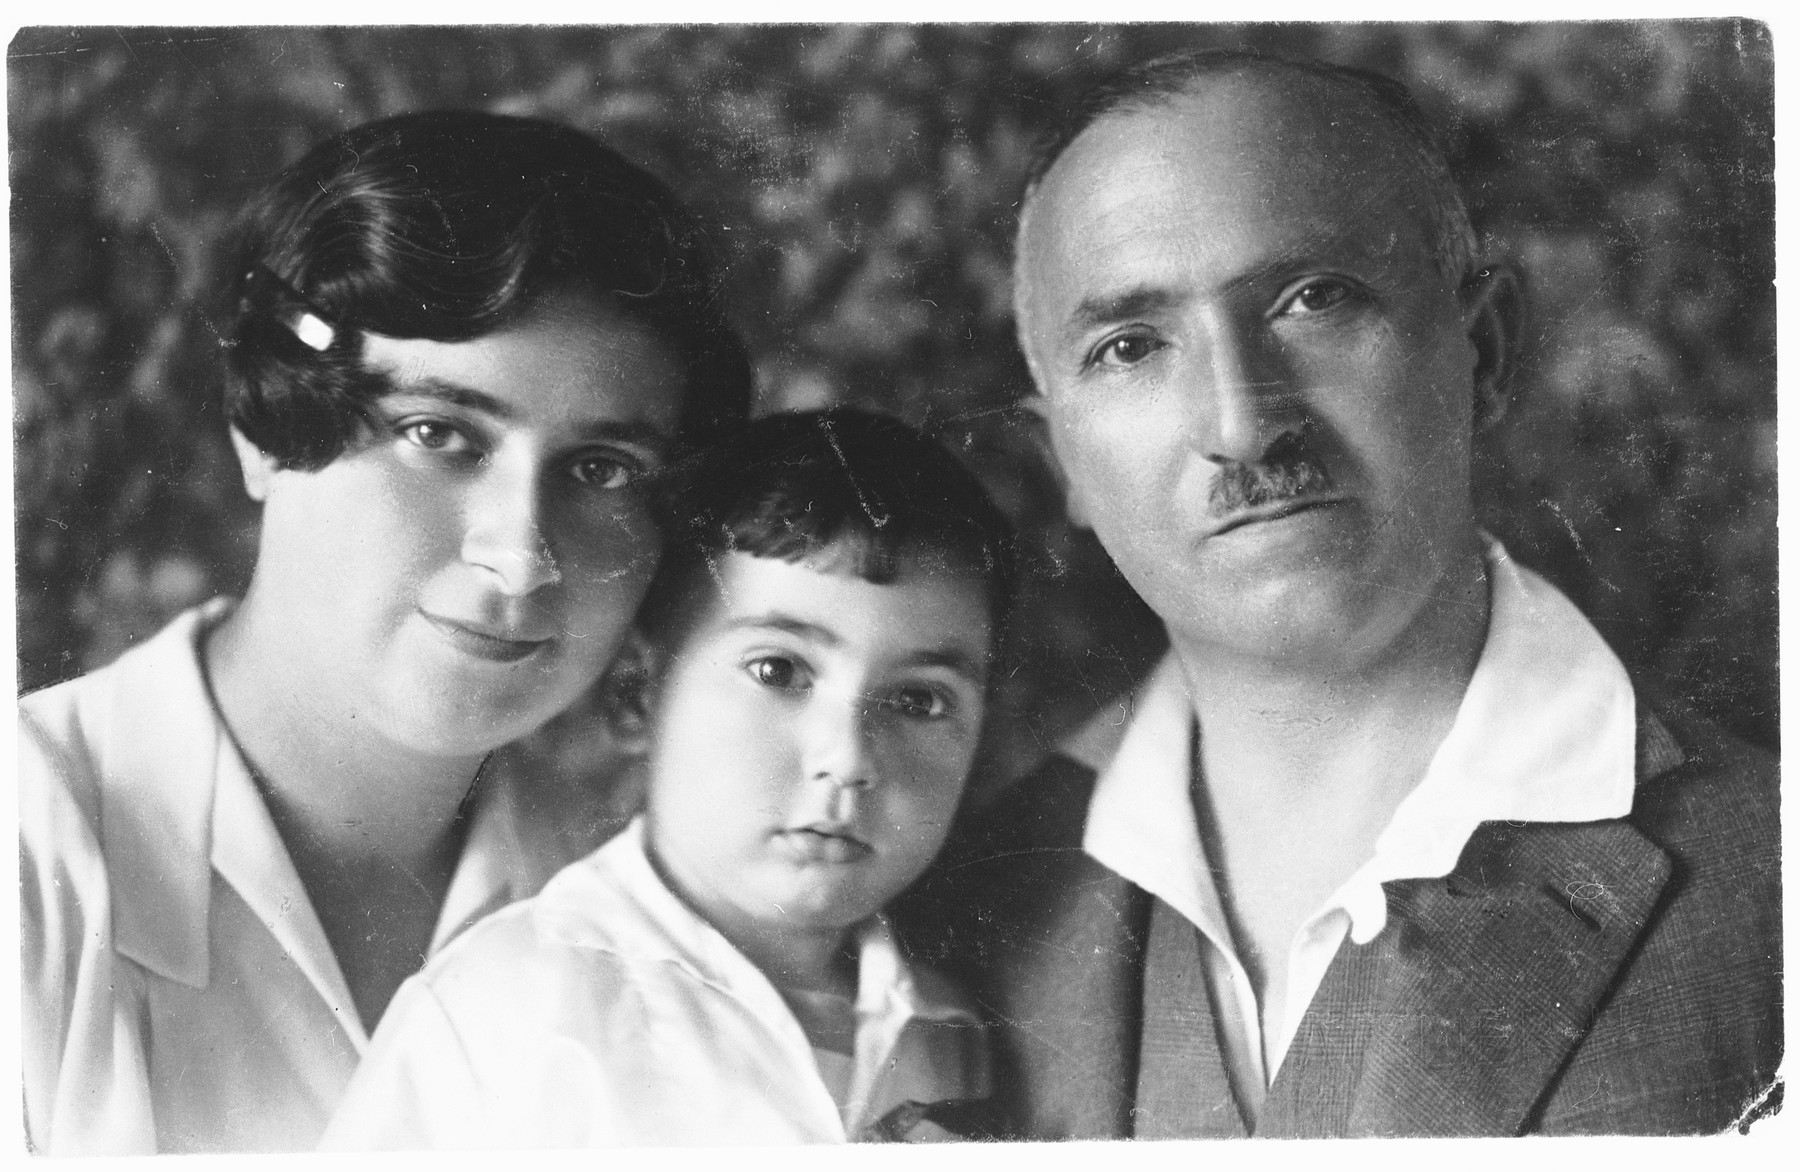 Group portrait of a Viennese Jewish family.   Pictured are Jolan, Heinrich and Emil Wellisch.